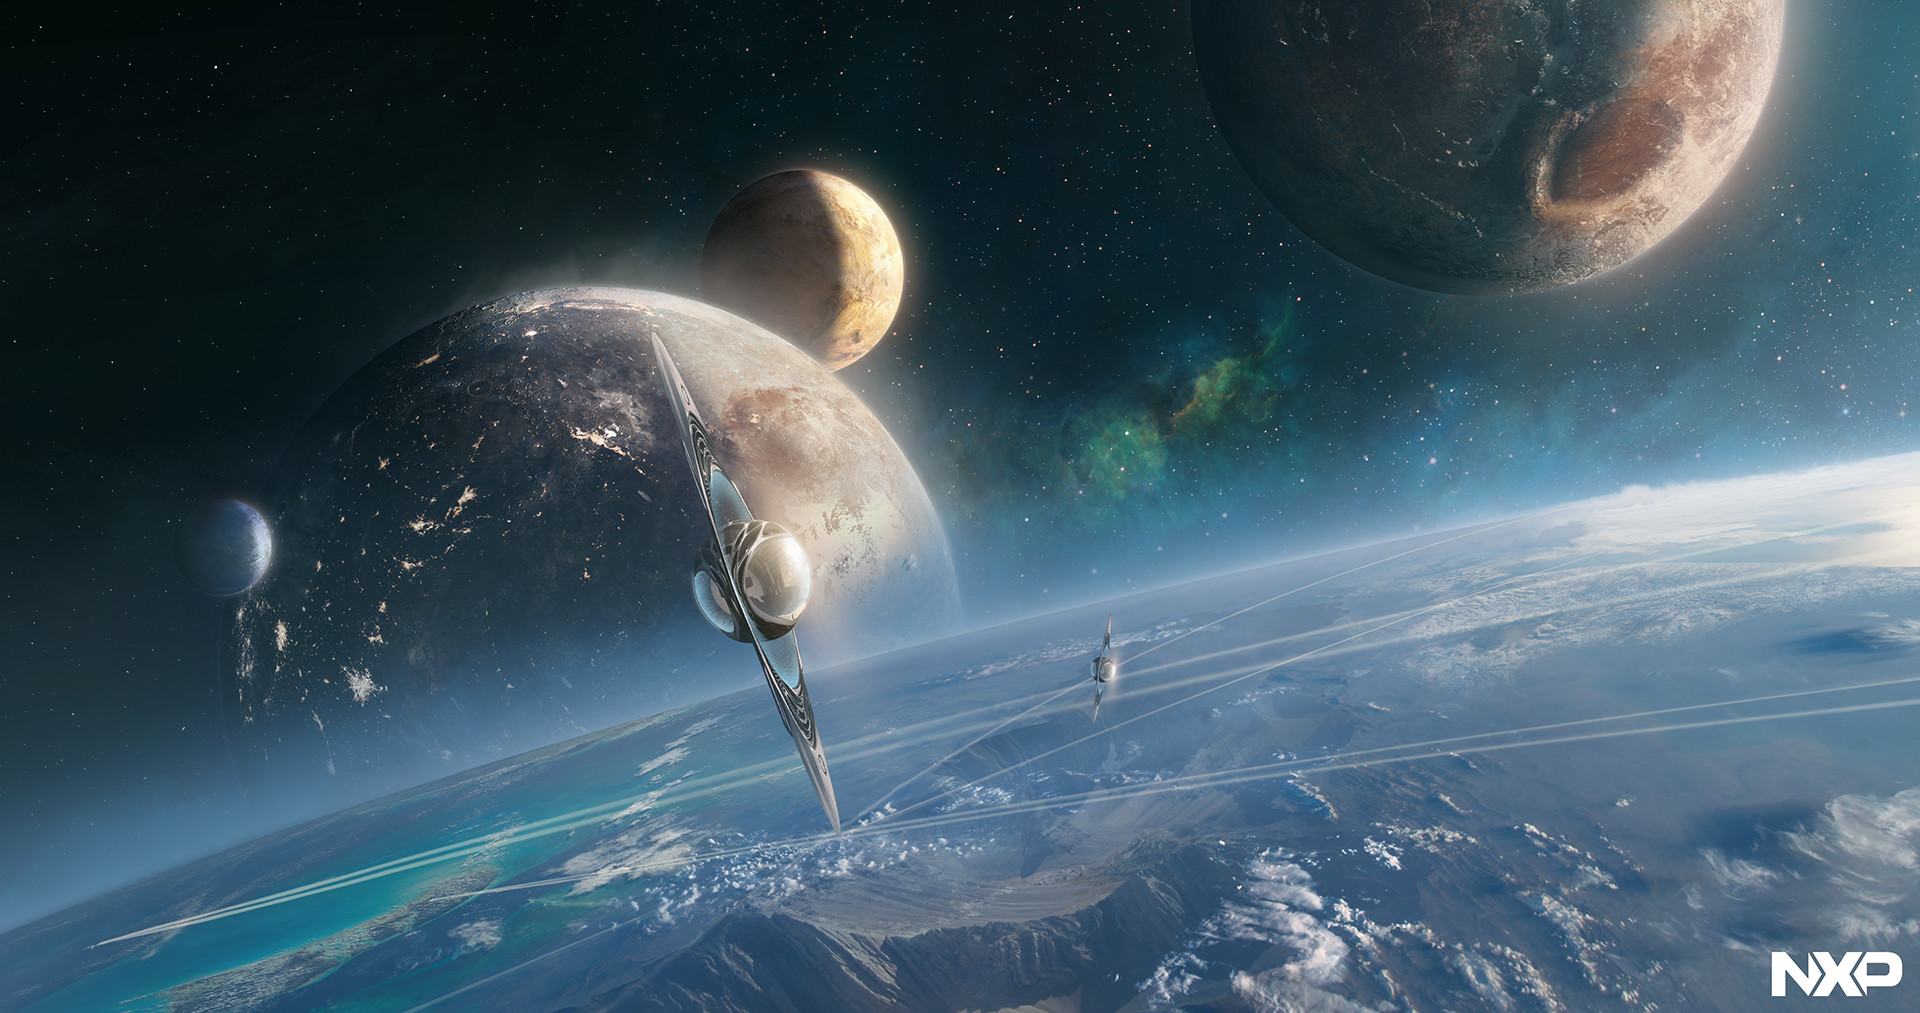 Jessica rossier matte painting projet nxp jr hd marque